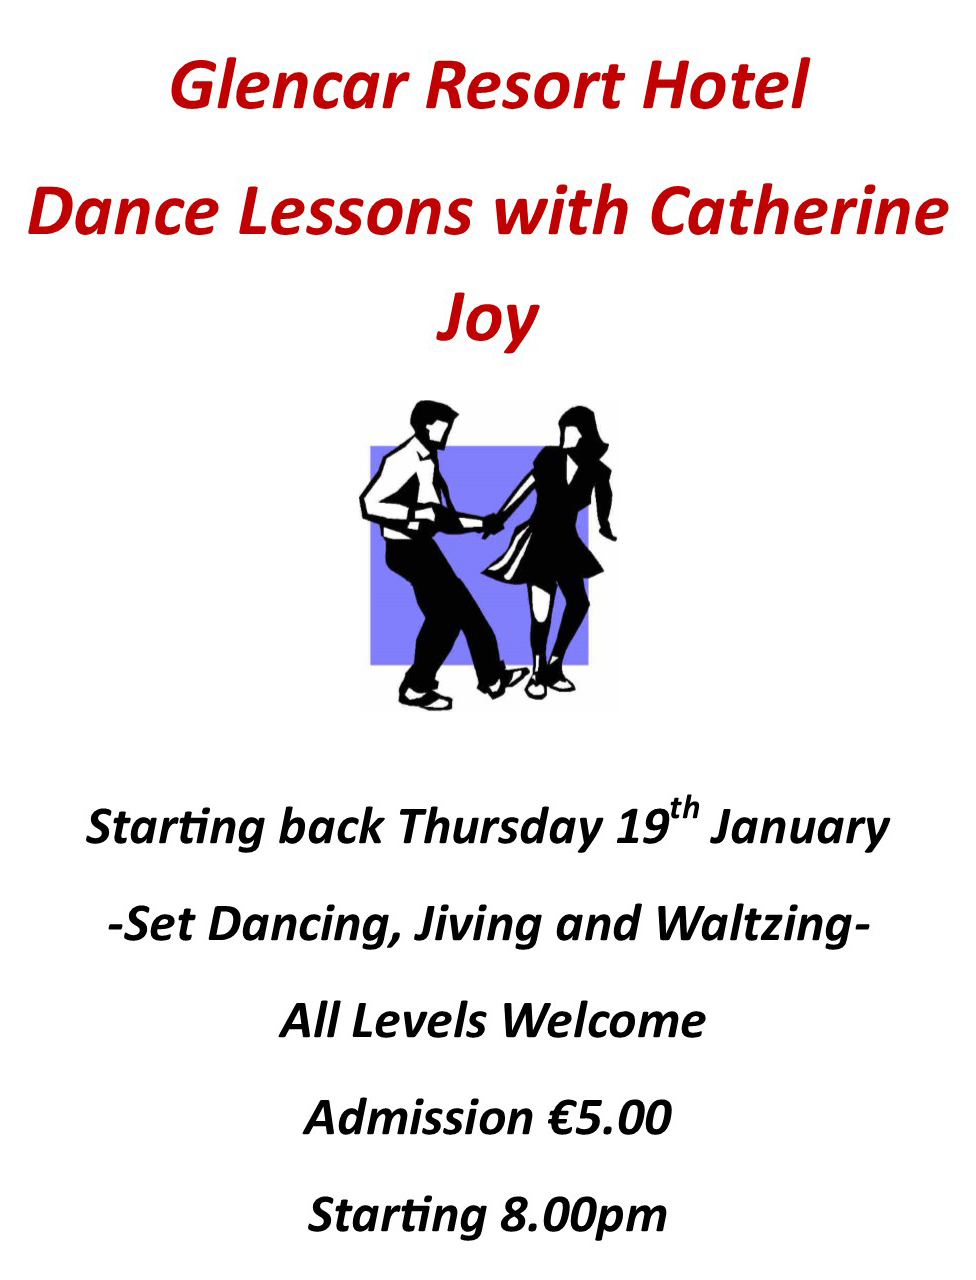 Dance Lessons with Catherine Joy